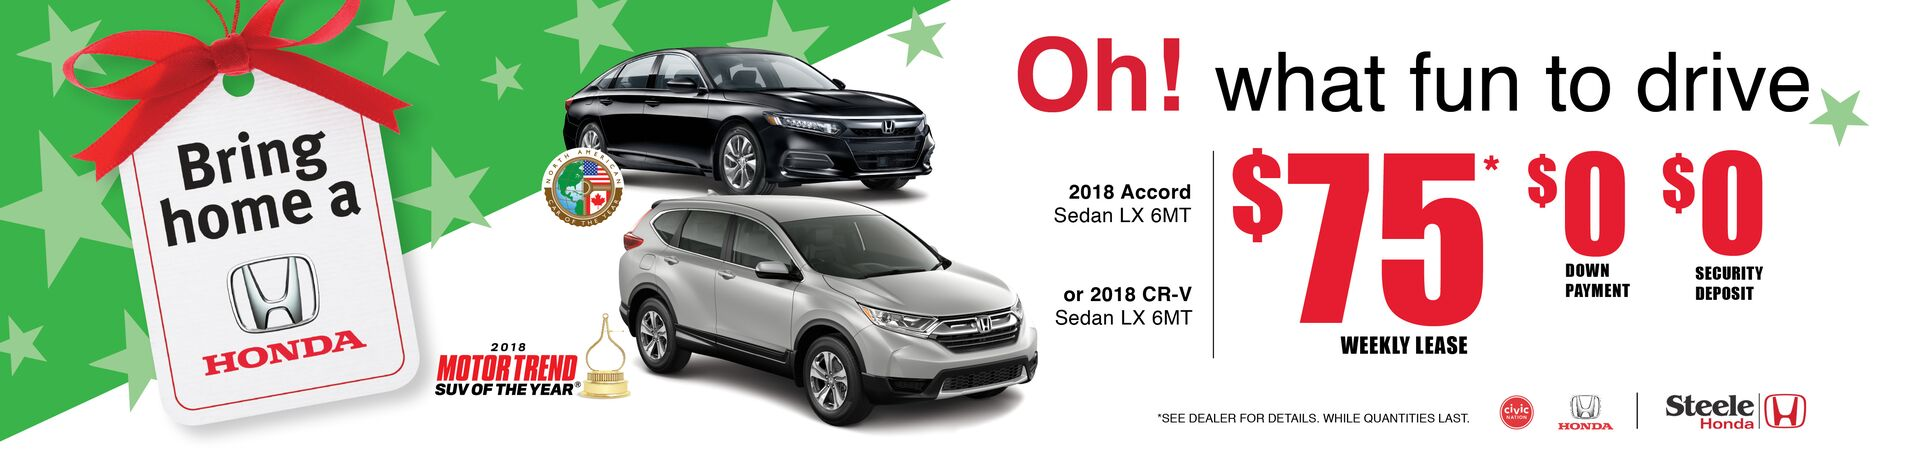 Bring Home a Honda CR-V/Accord